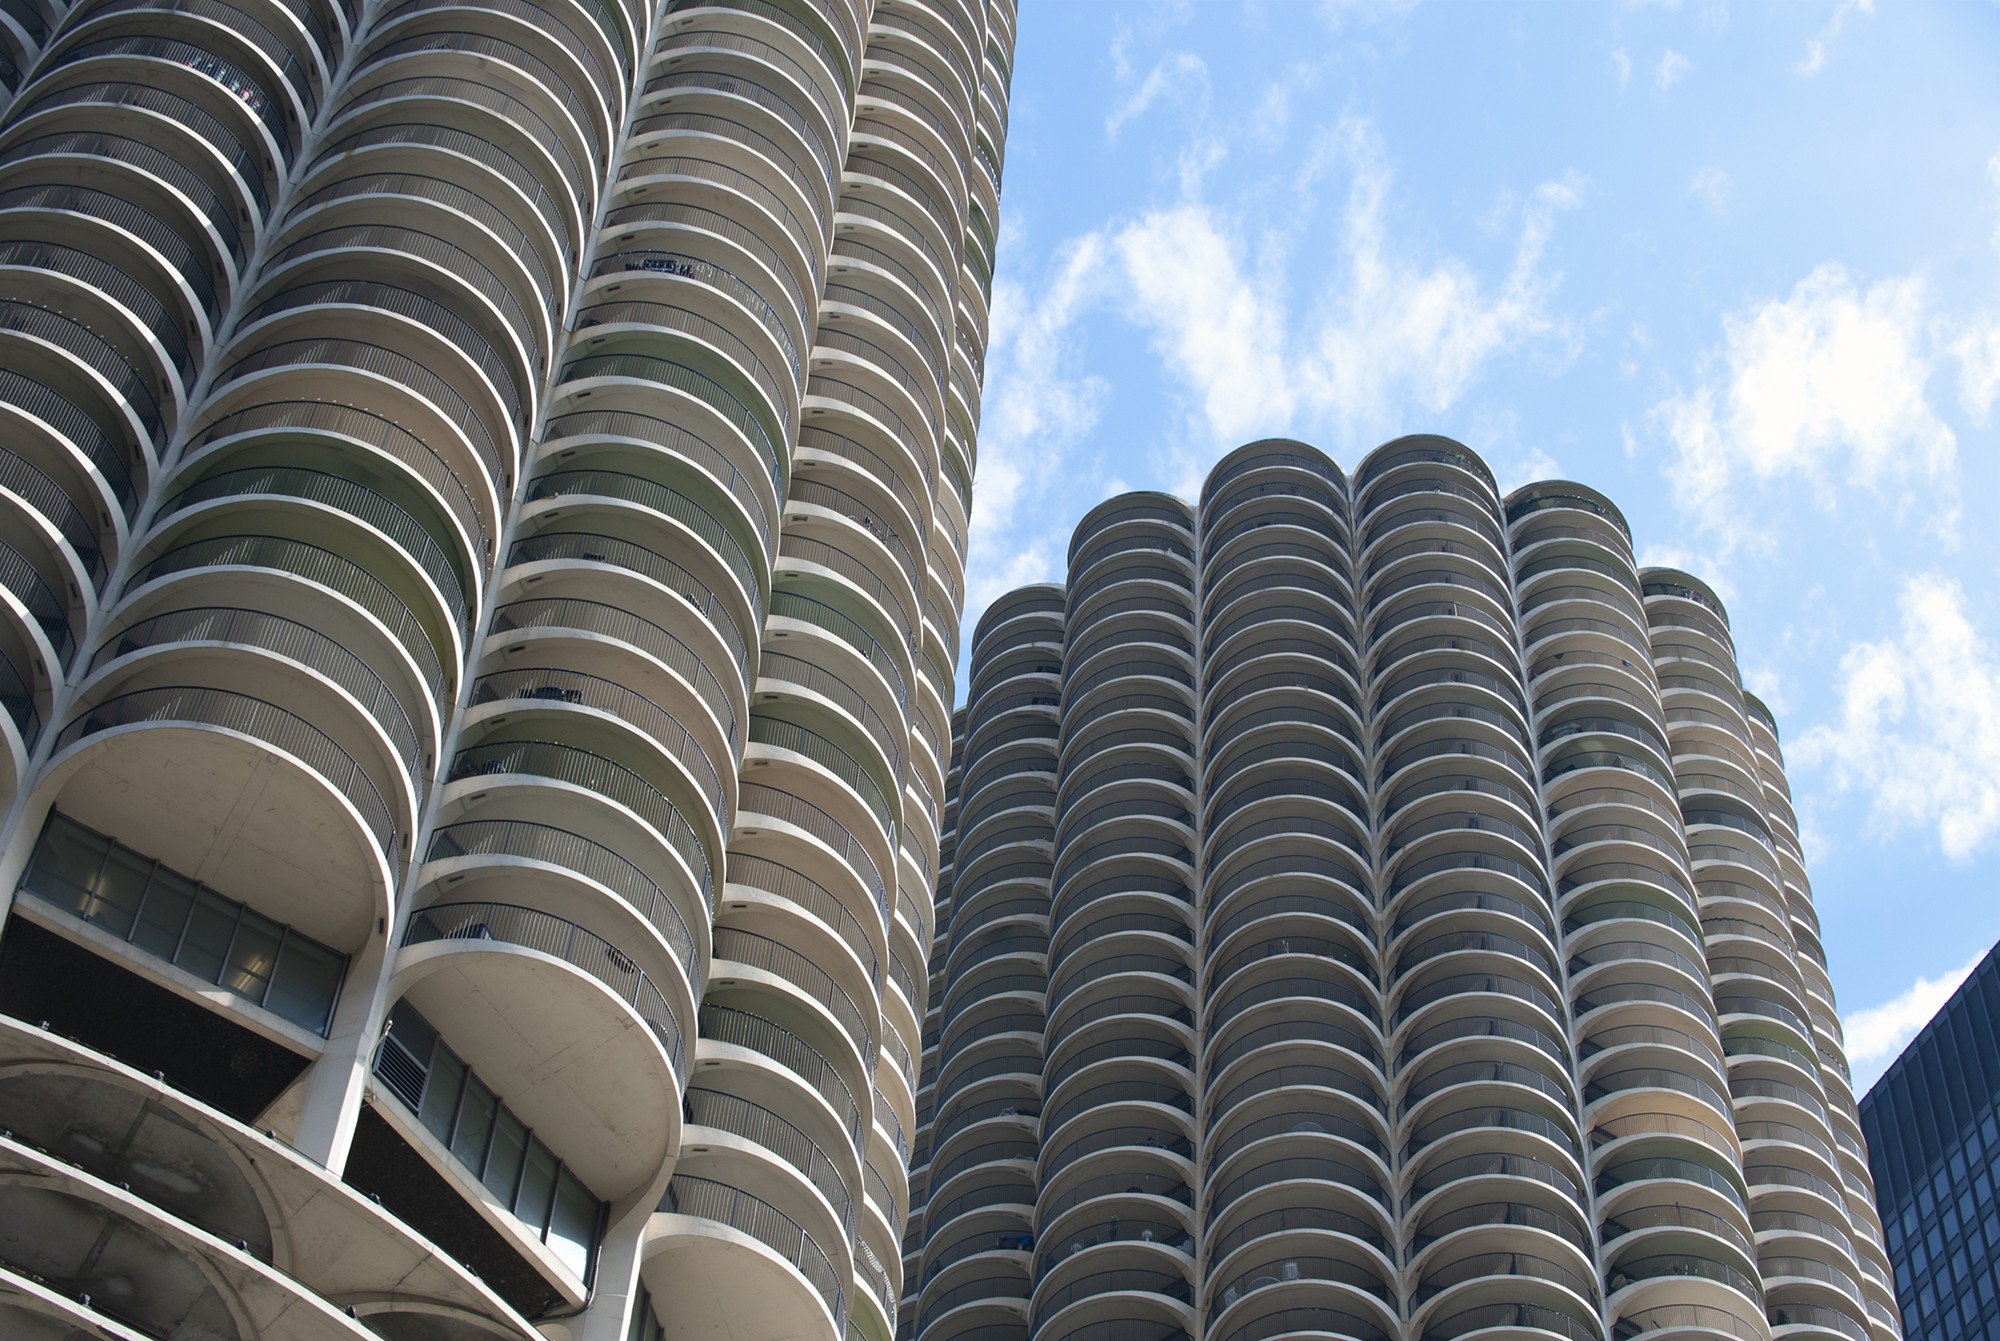 Bertrand Goldberg · Architecture & Design Visual ...